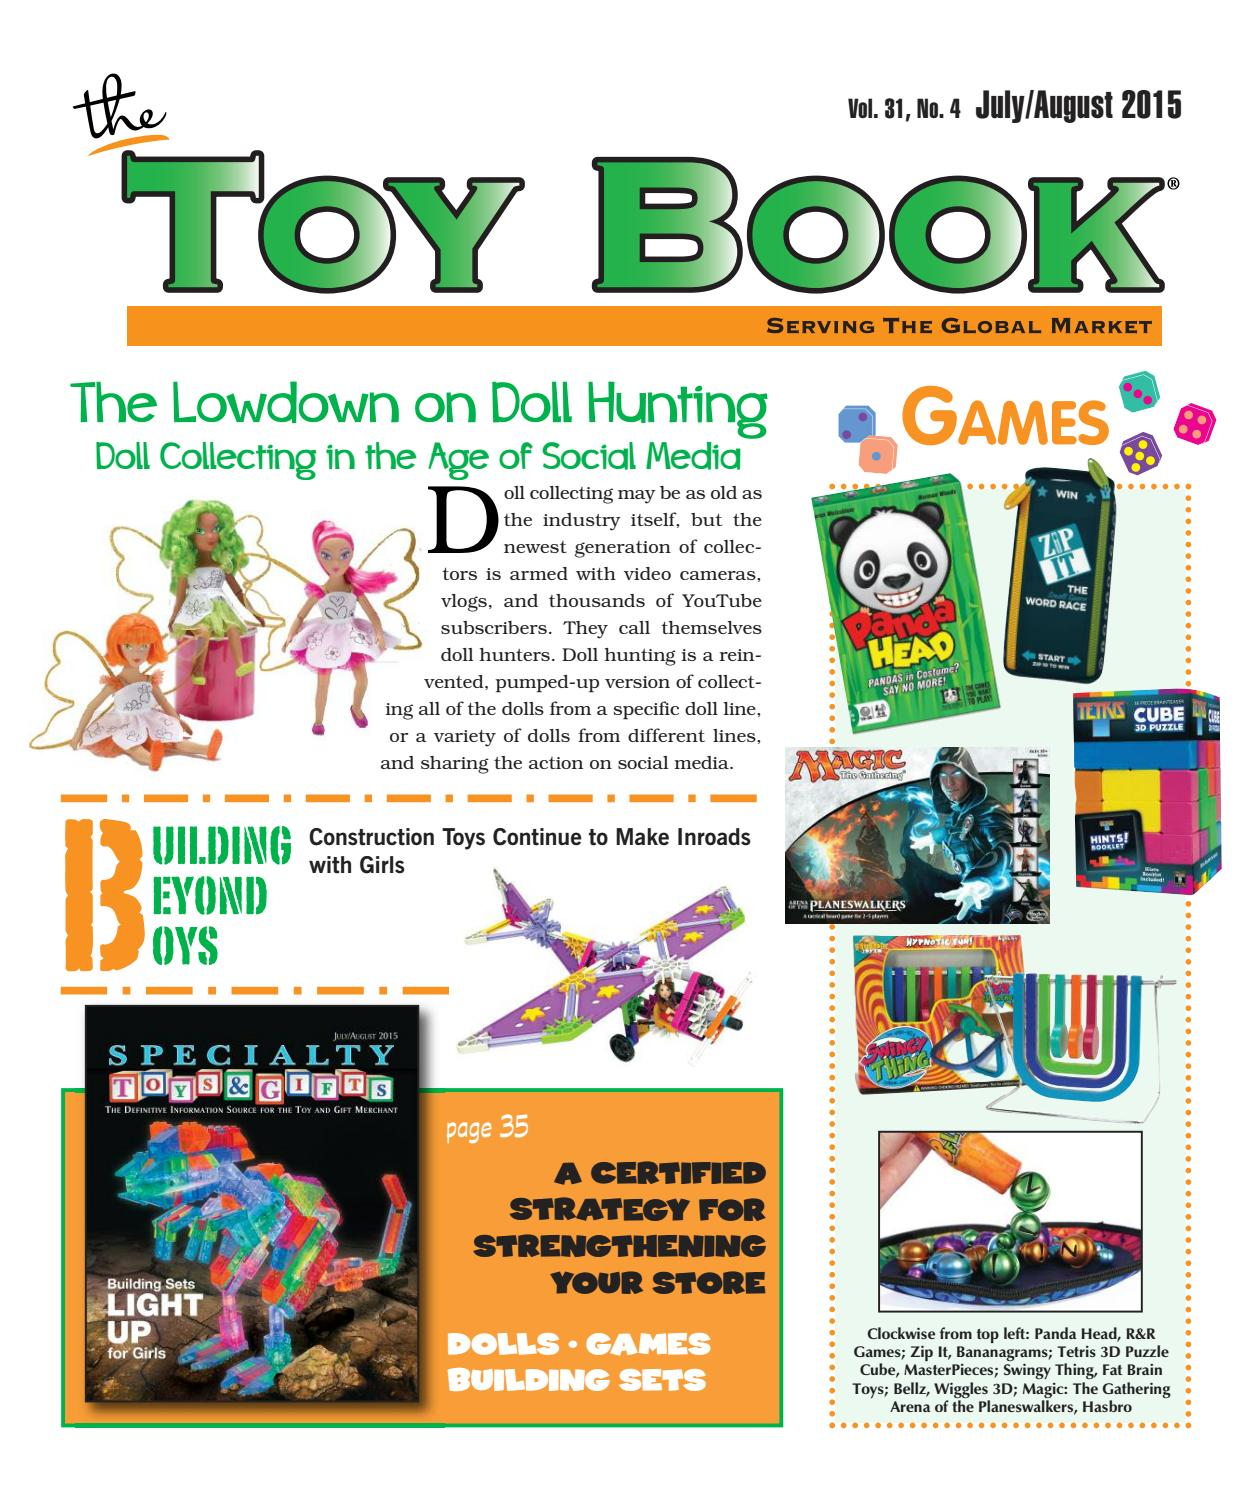 July/August 2015 by The Toy Book - issuu